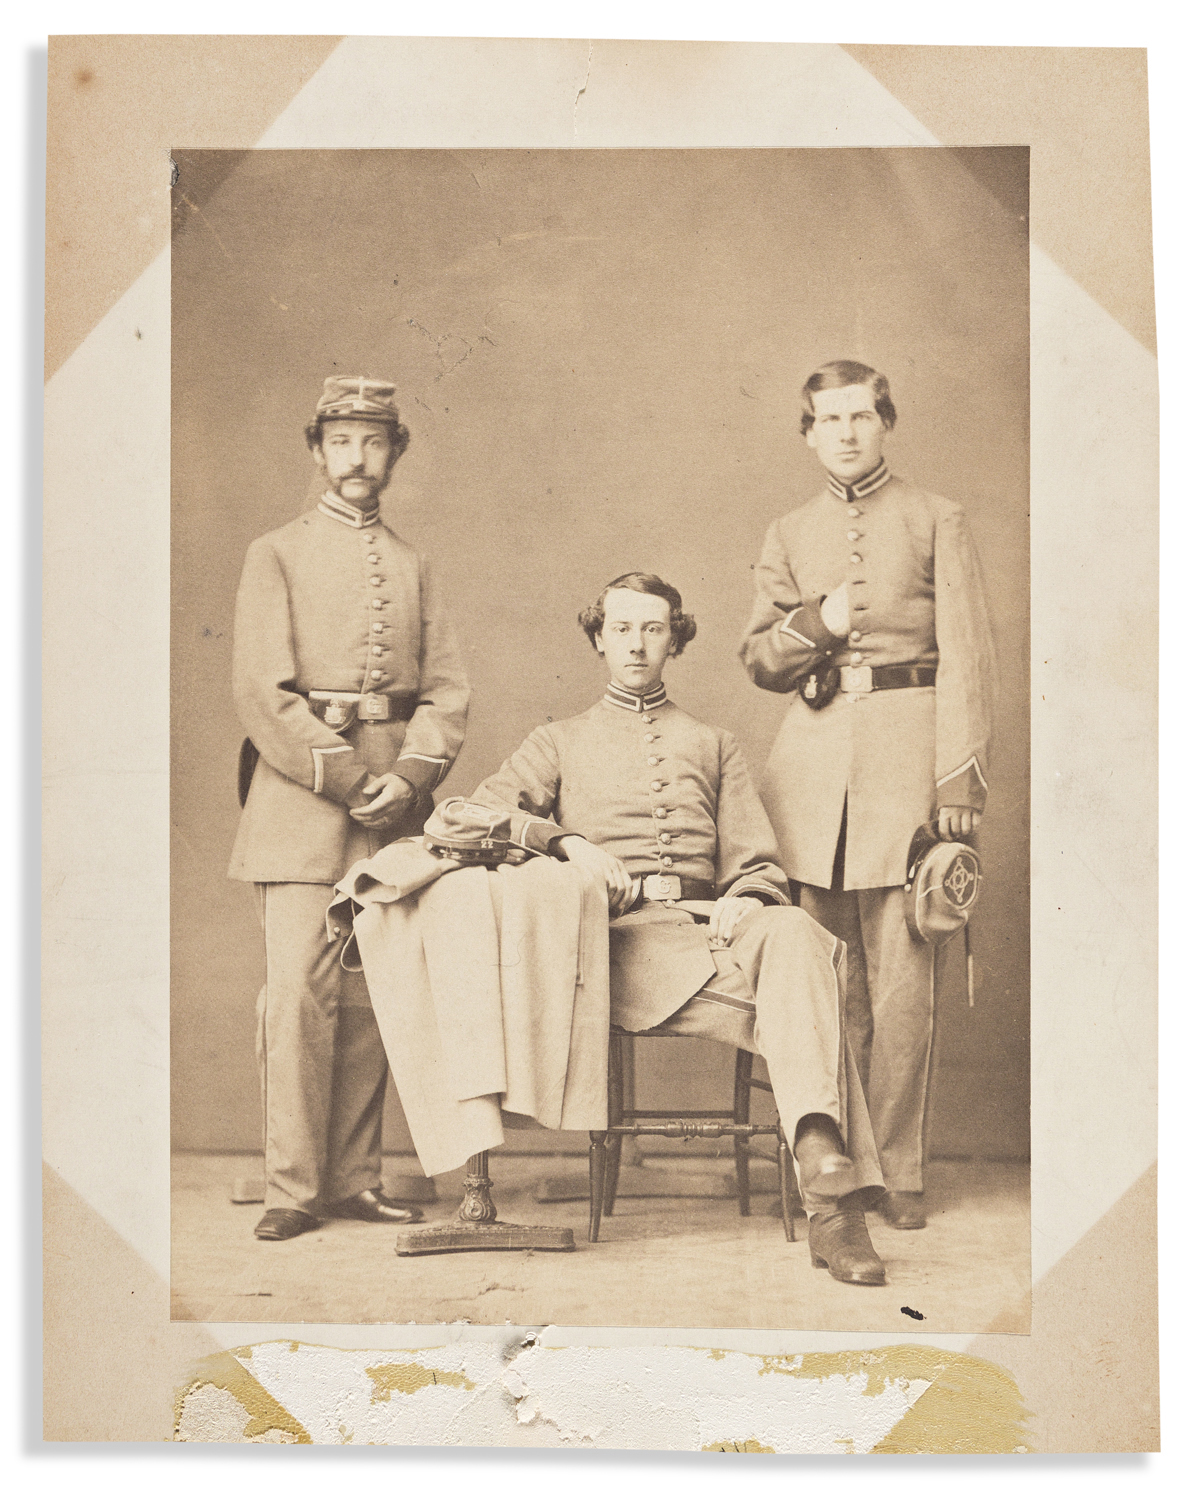 (CIVIL WAR--NEW YORK.) Portrait said to be the Hyde brothers of 22nd Regiment, New York National Guard.